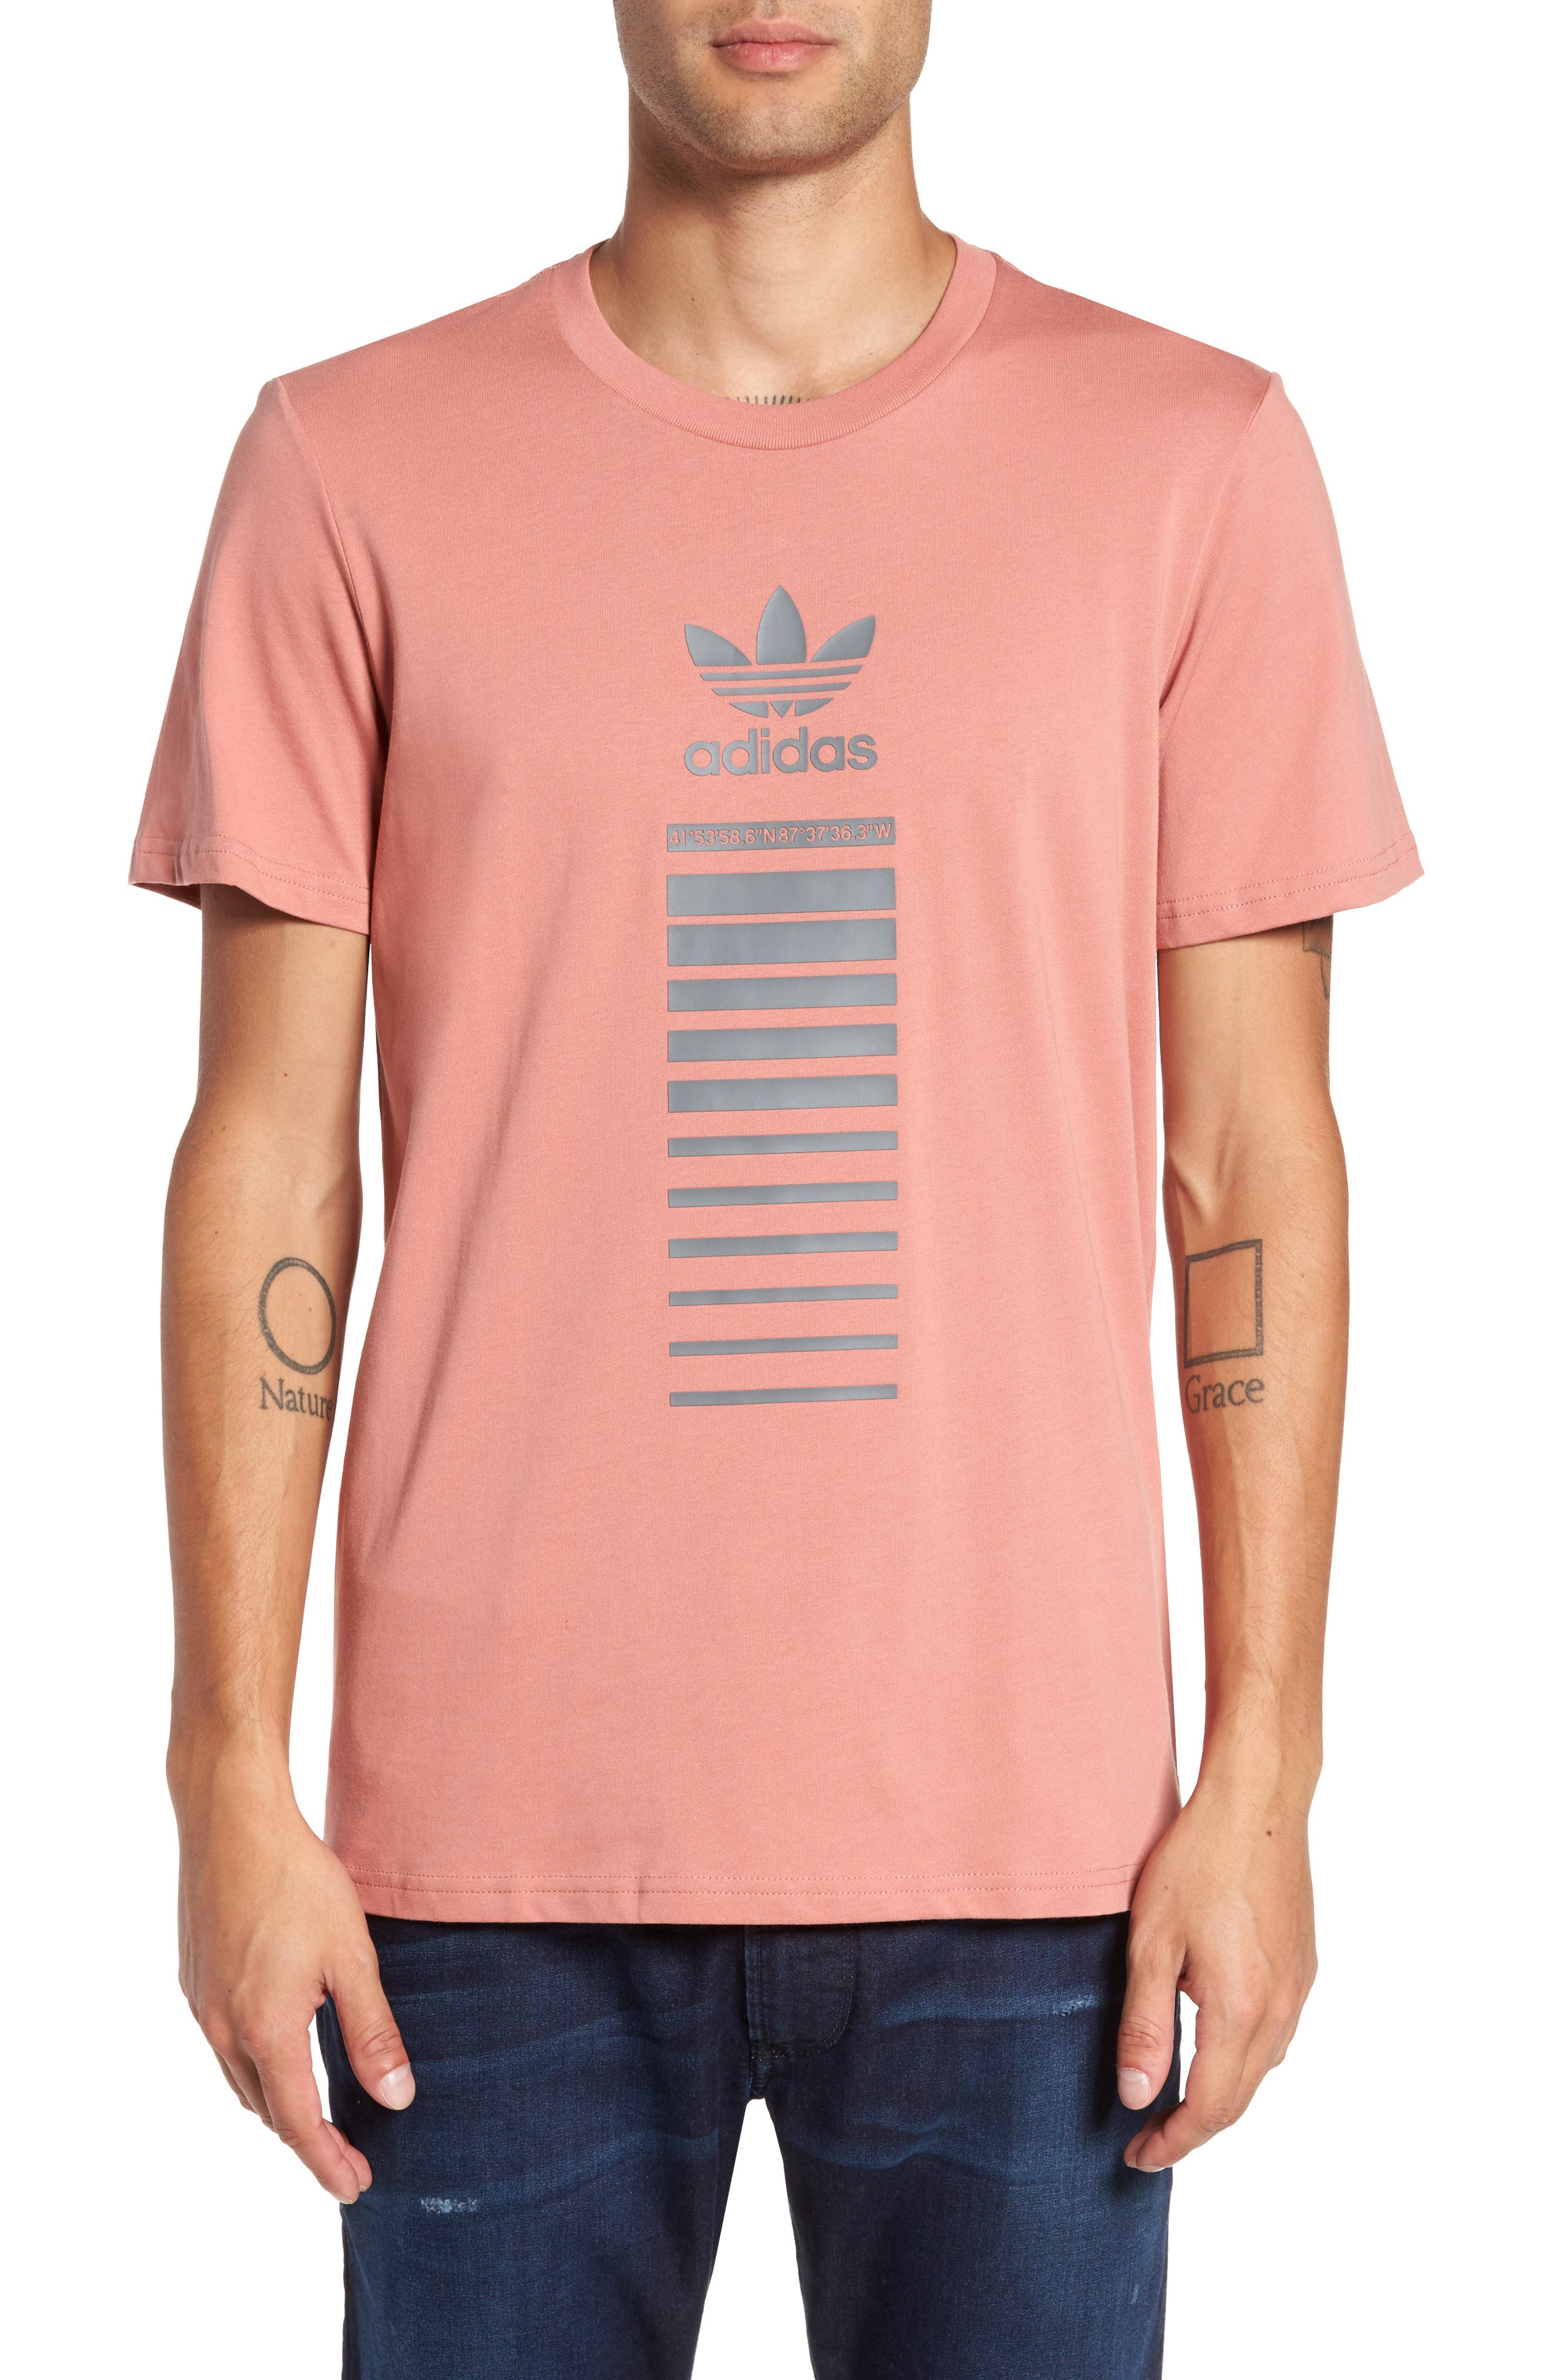 adidas Originals Chicago Emblem T-shirt